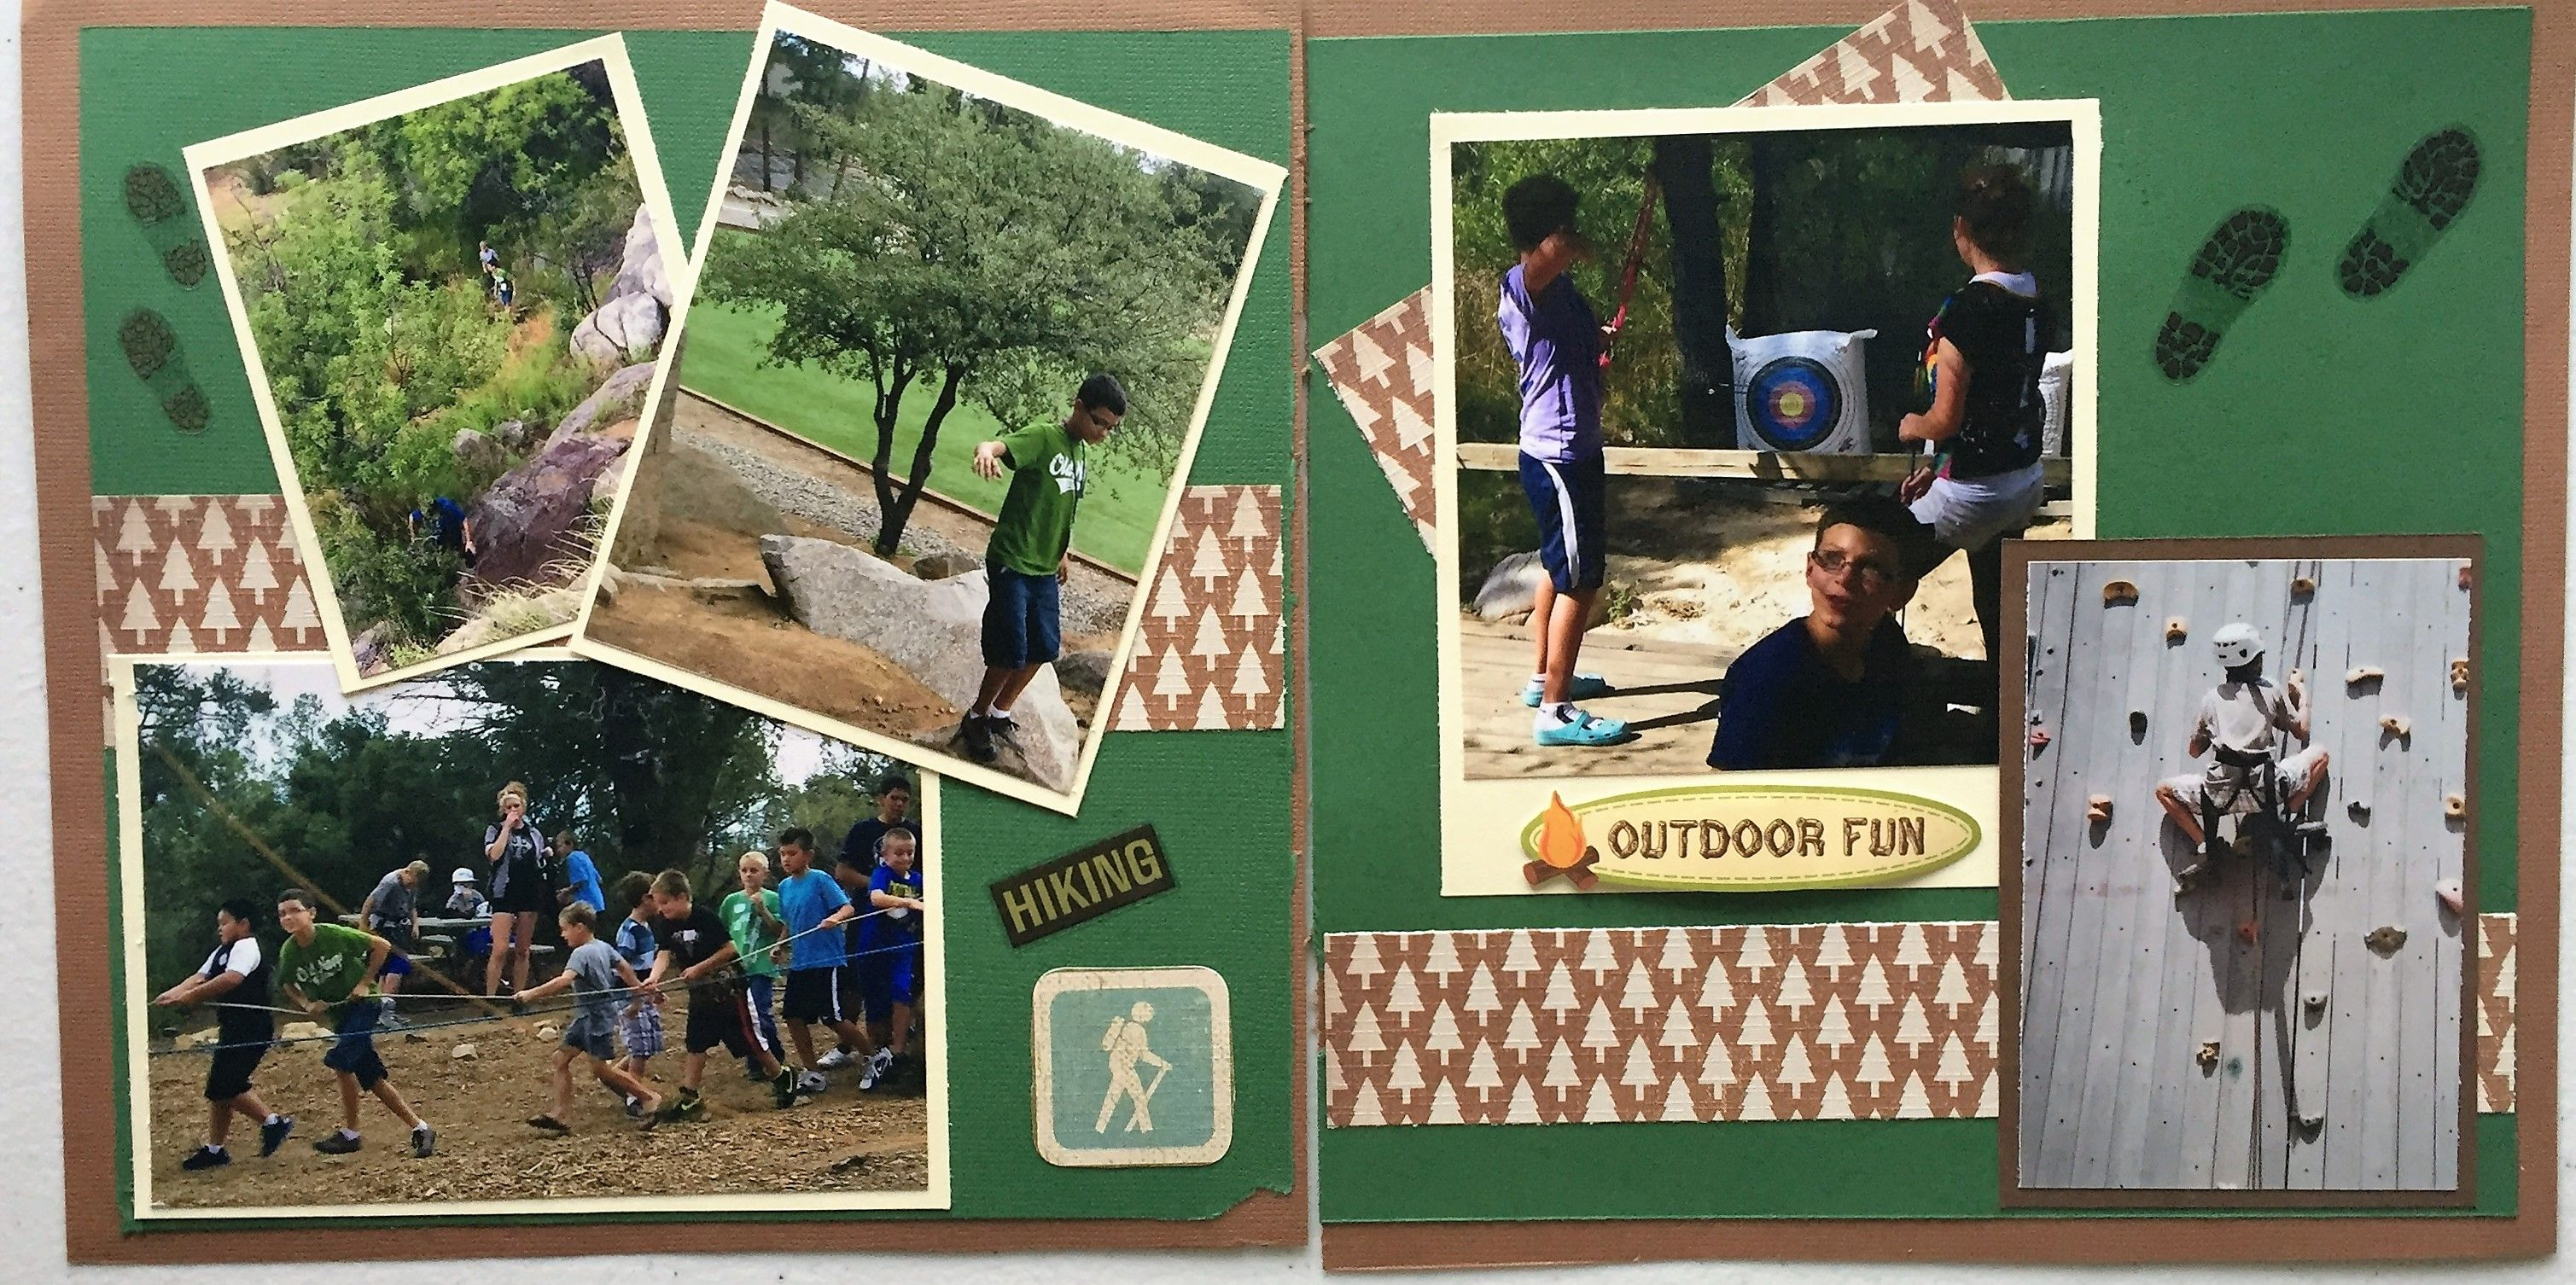 Hiking and other other outdoor activities. #summercamp #camp #churchcamp #scrapbook #layout #hiking #outdoors #rockwall